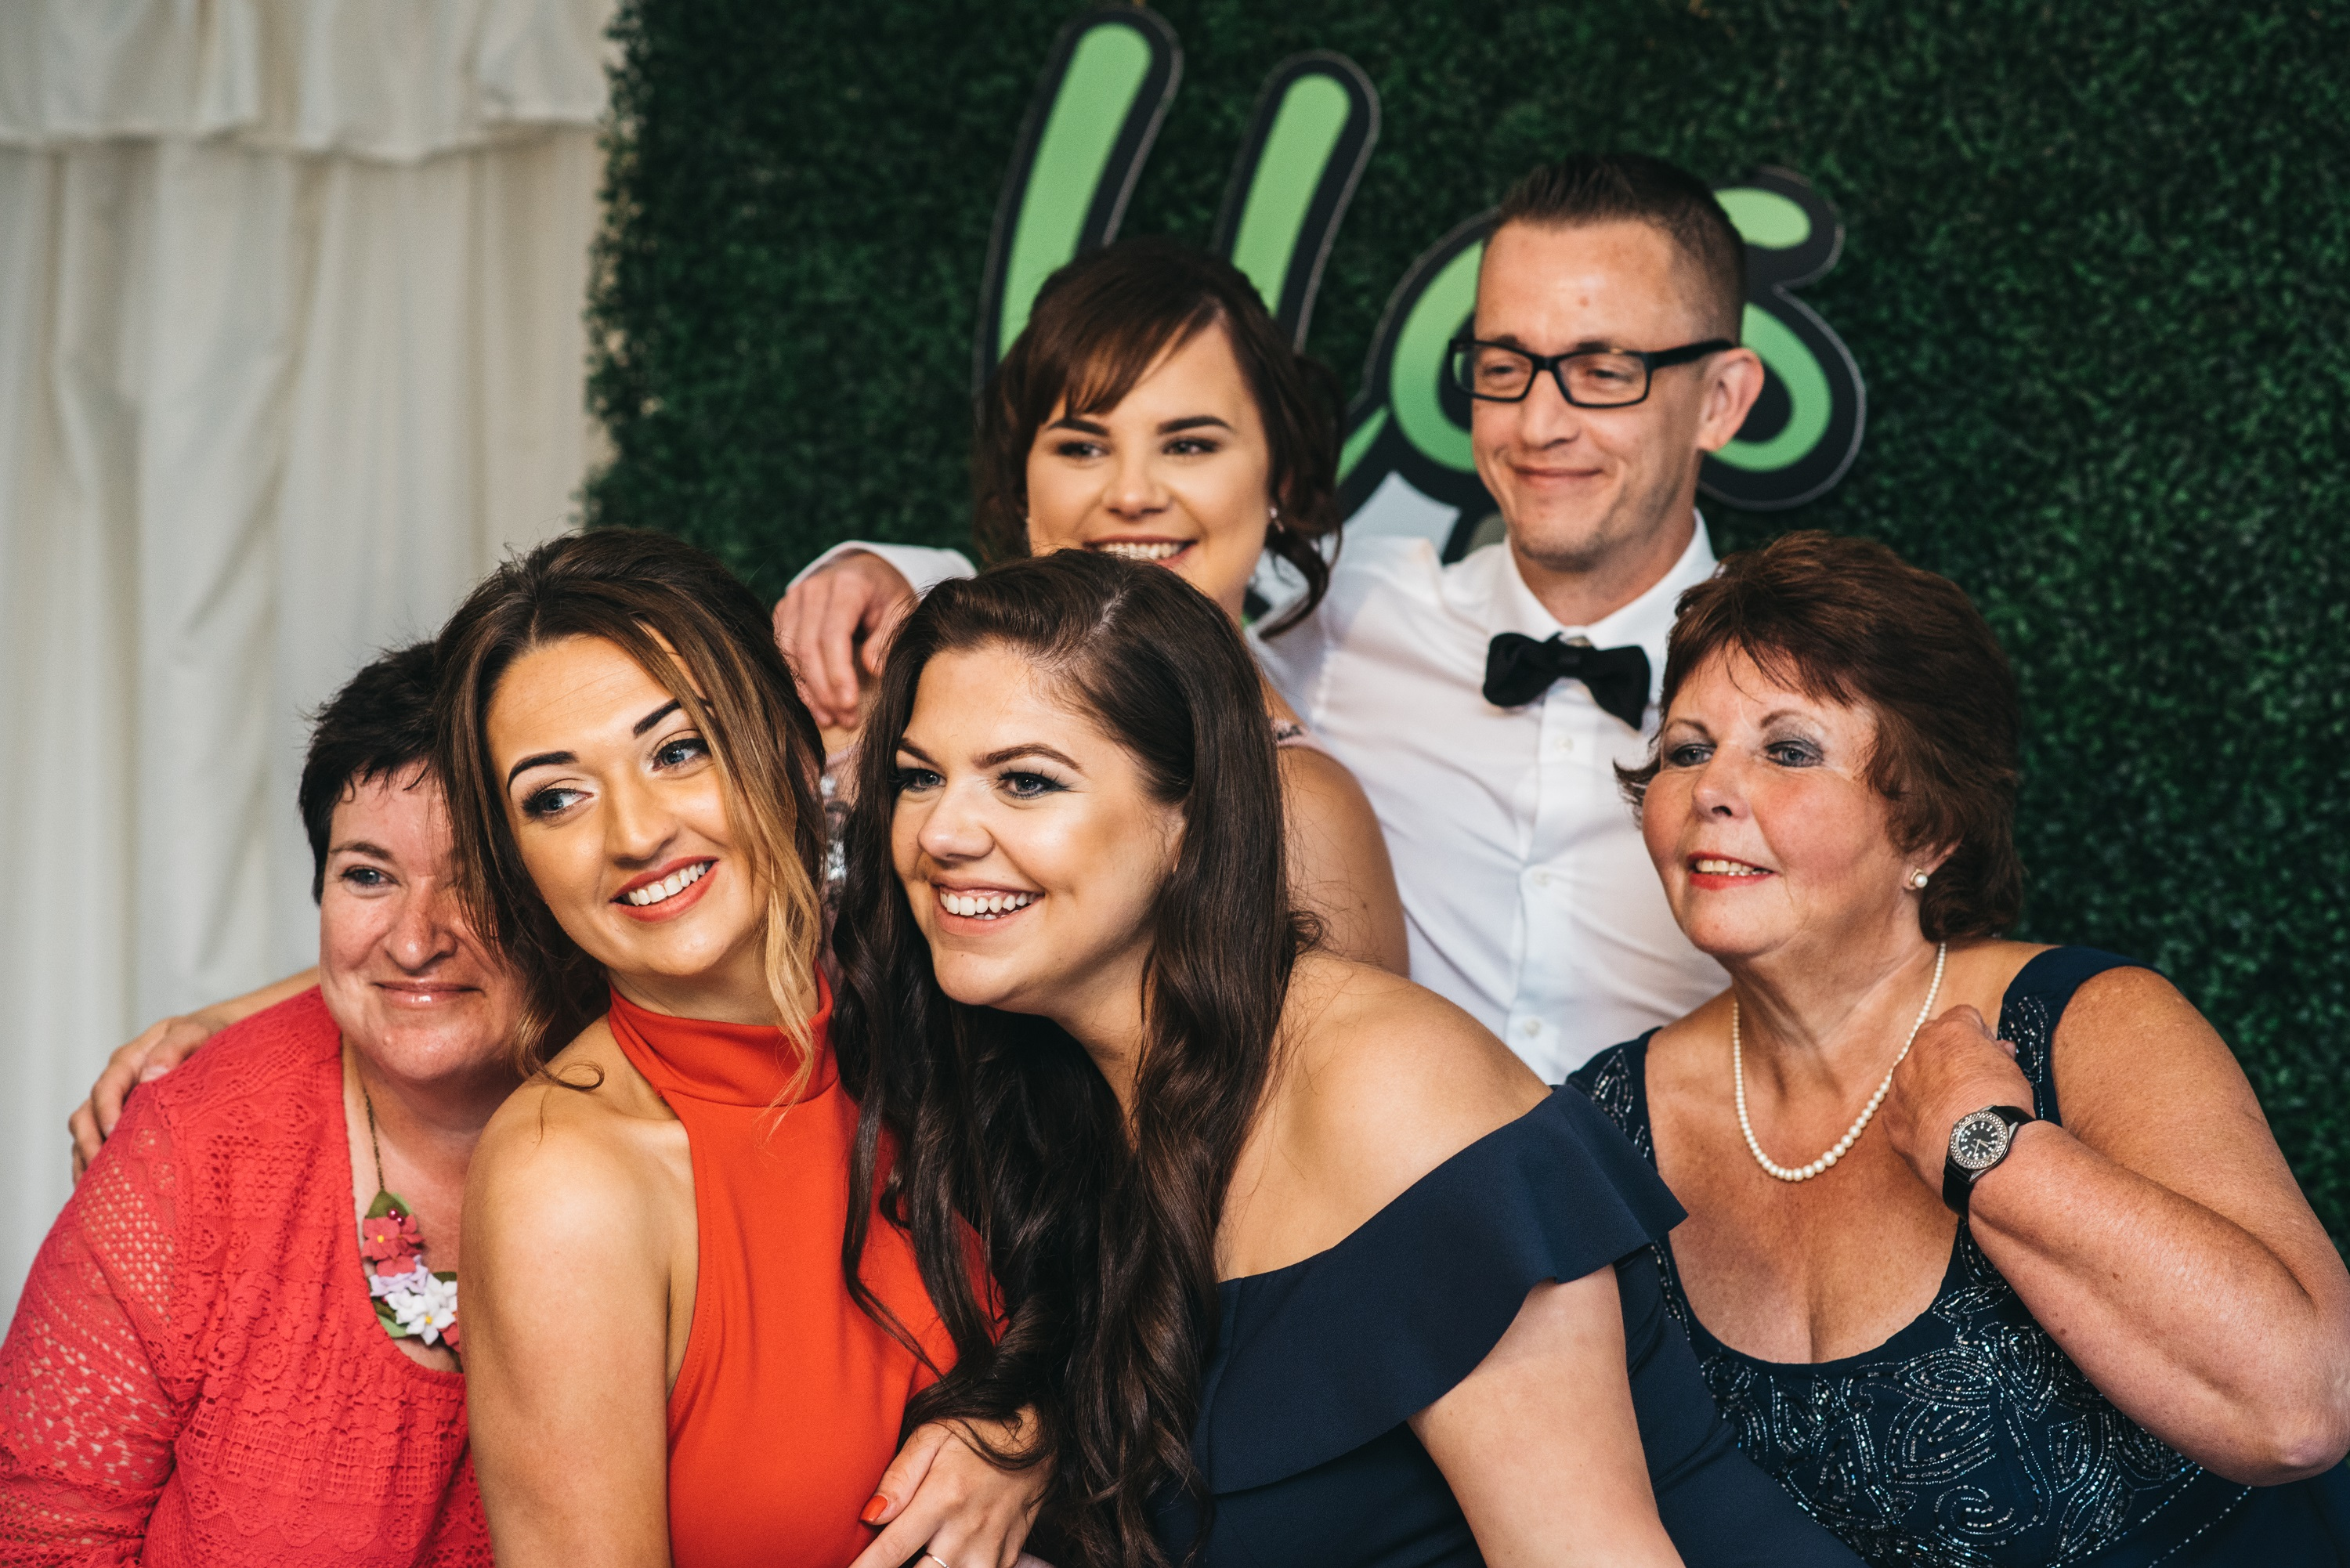 Puffin Produce Staff enjoying the photobooth at the Blas y Tir Charity Ball